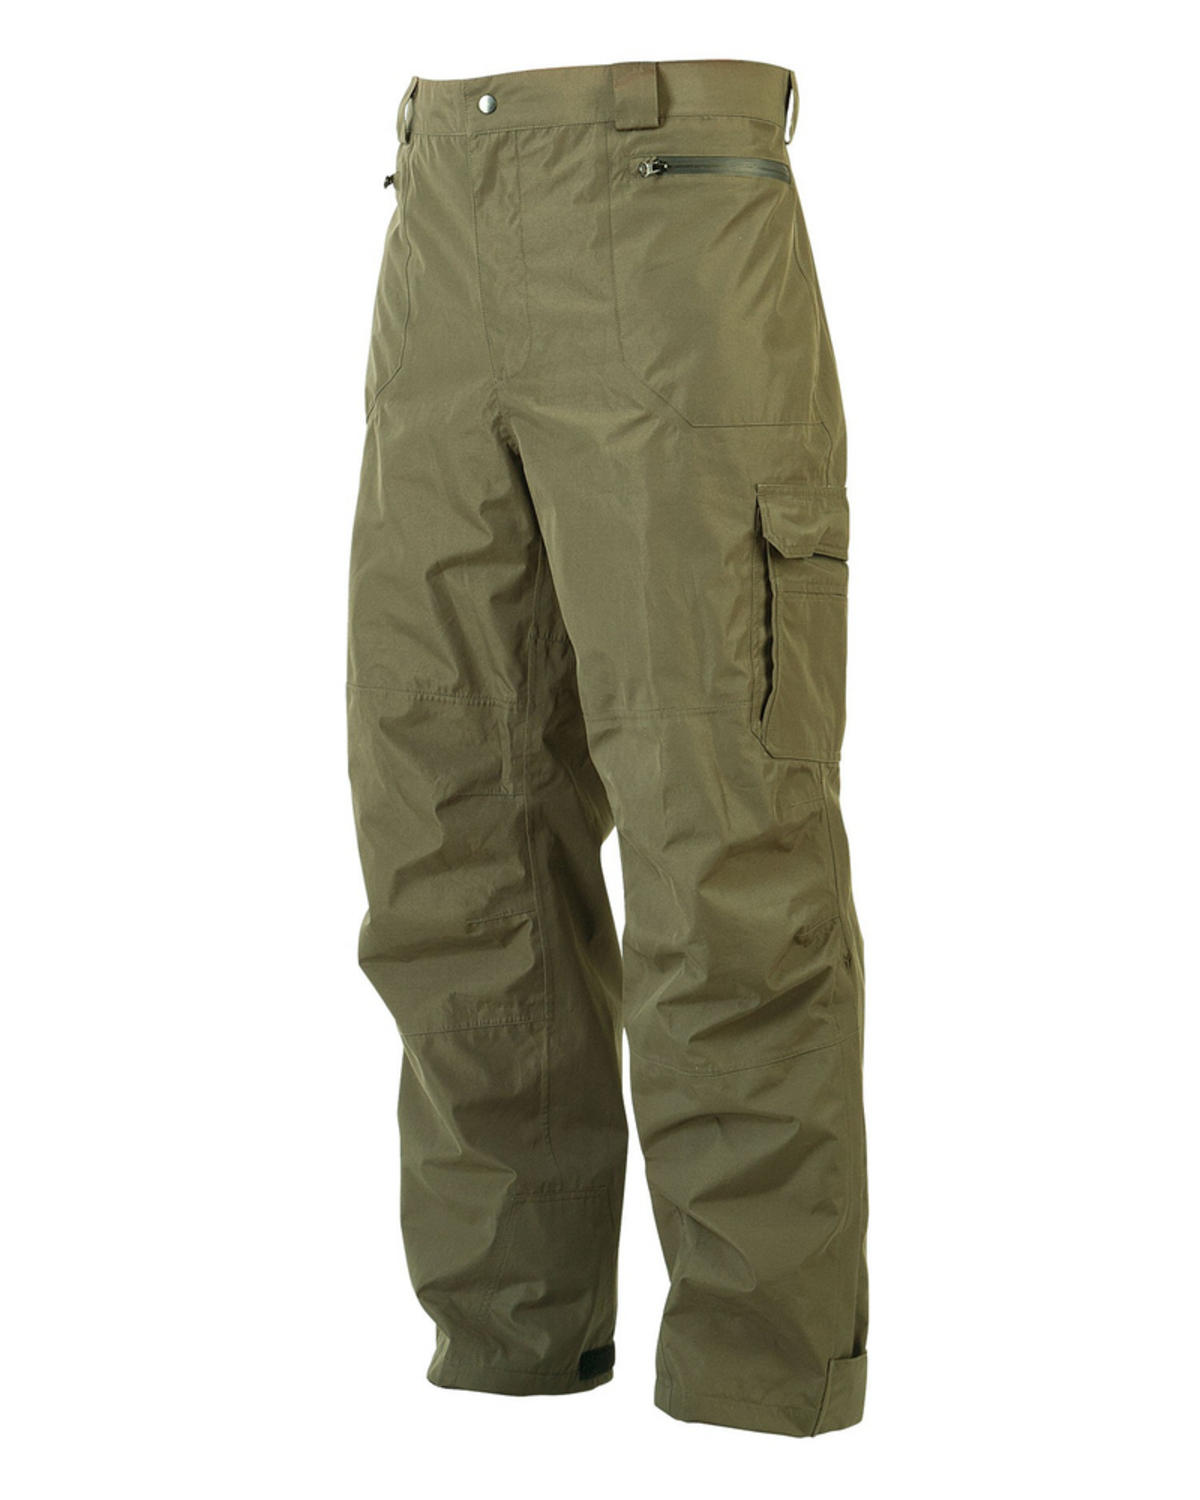 DAIWA SPECIALIST HIGH PERFORMANCE BREATHABLE CLOTHING JACKET OR TROUSERS